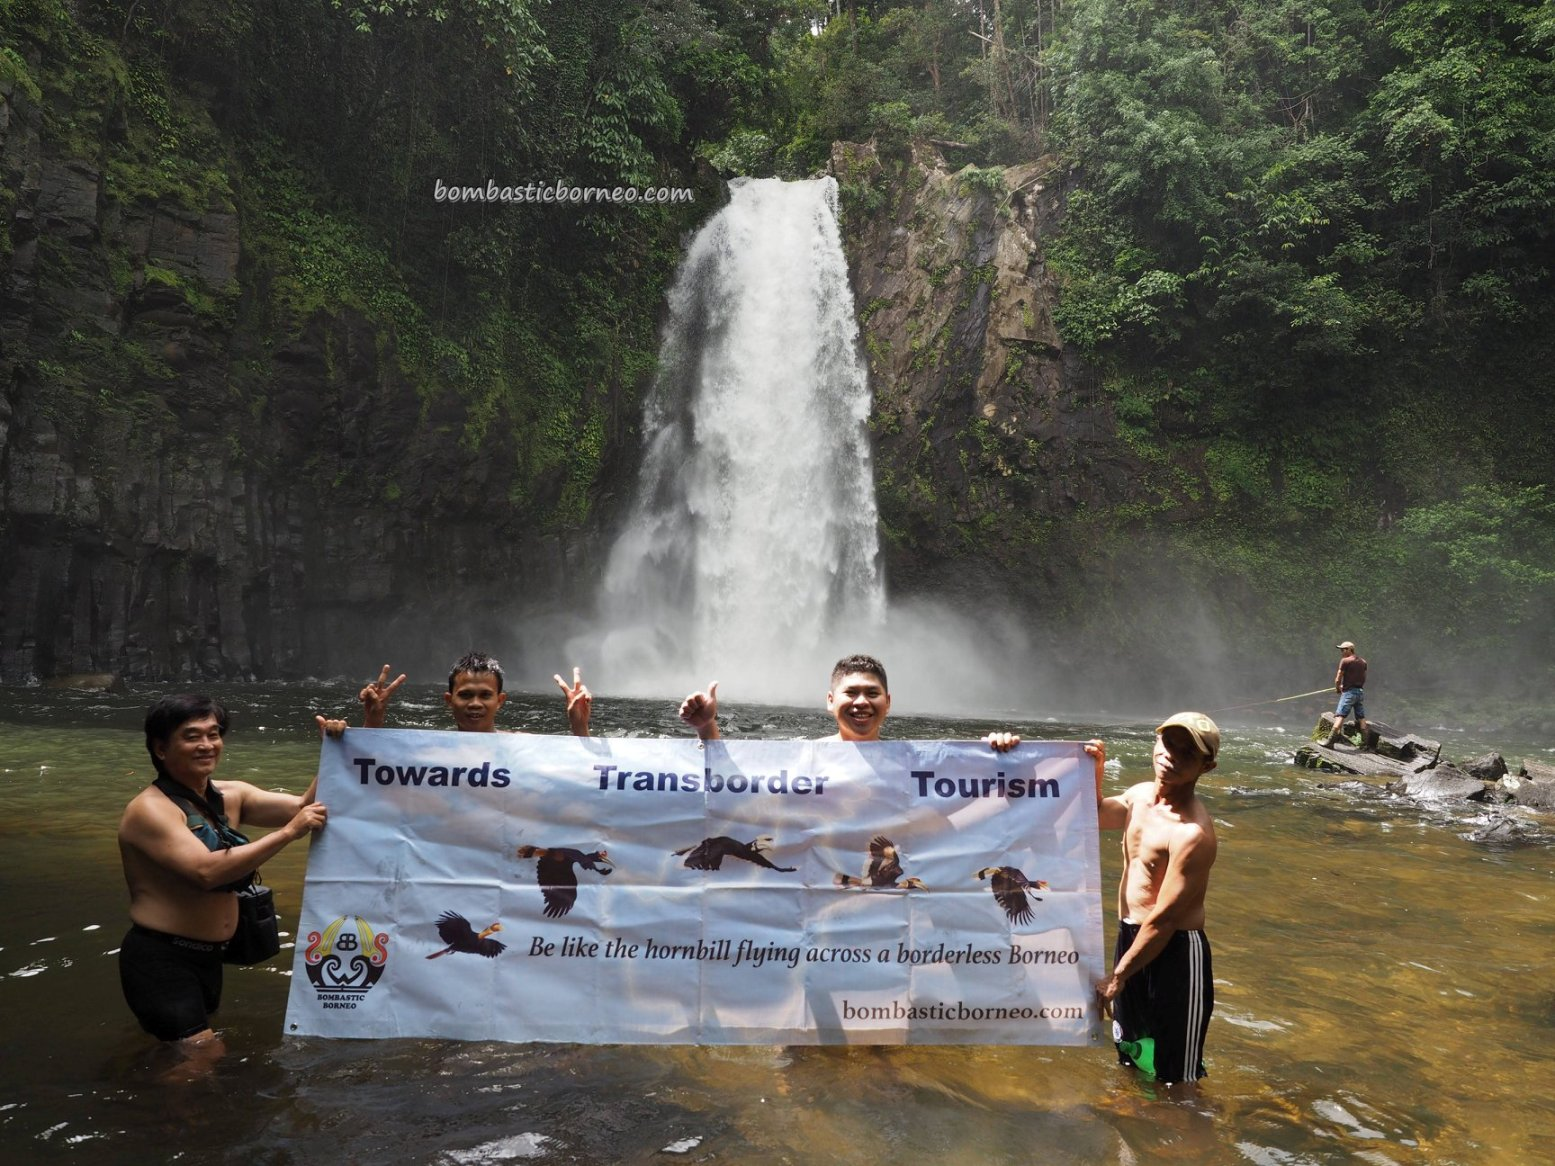 air terjun, exploration, backpackers, Borneo, Kalimantan Barat, Desa Bengkilu, Dusun Laek, Tujuh Belas, Obyek wisata, Tourism, travel guide, authentic village, crossborder, 印尼西加里曼丹, 婆罗洲探险